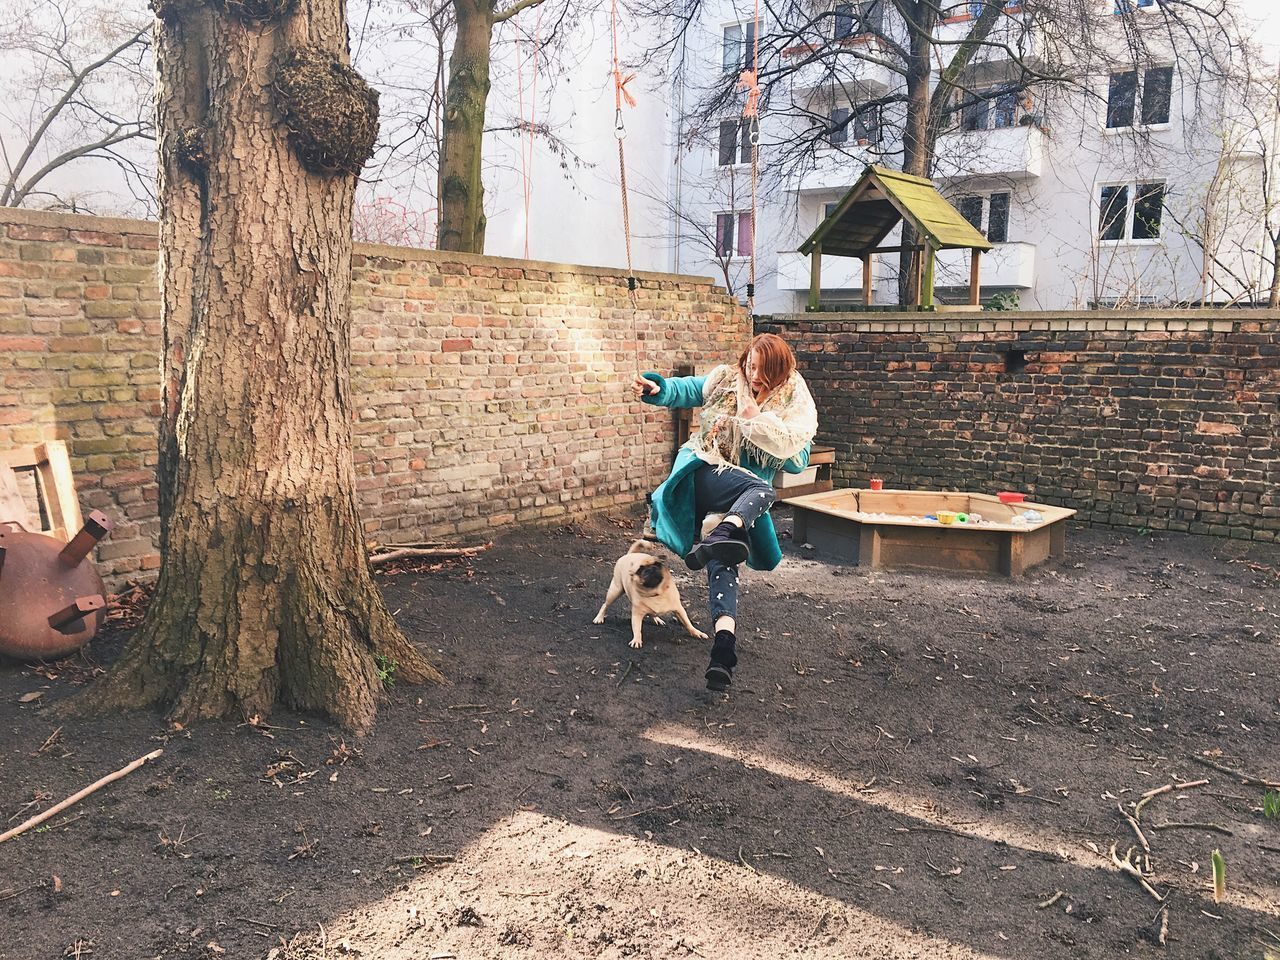 dog attack Bonding Childhood Day Dog Fun Fun Innocence Leisure Activity Pets Playground Playing Sitting Swing Tree Young Adult